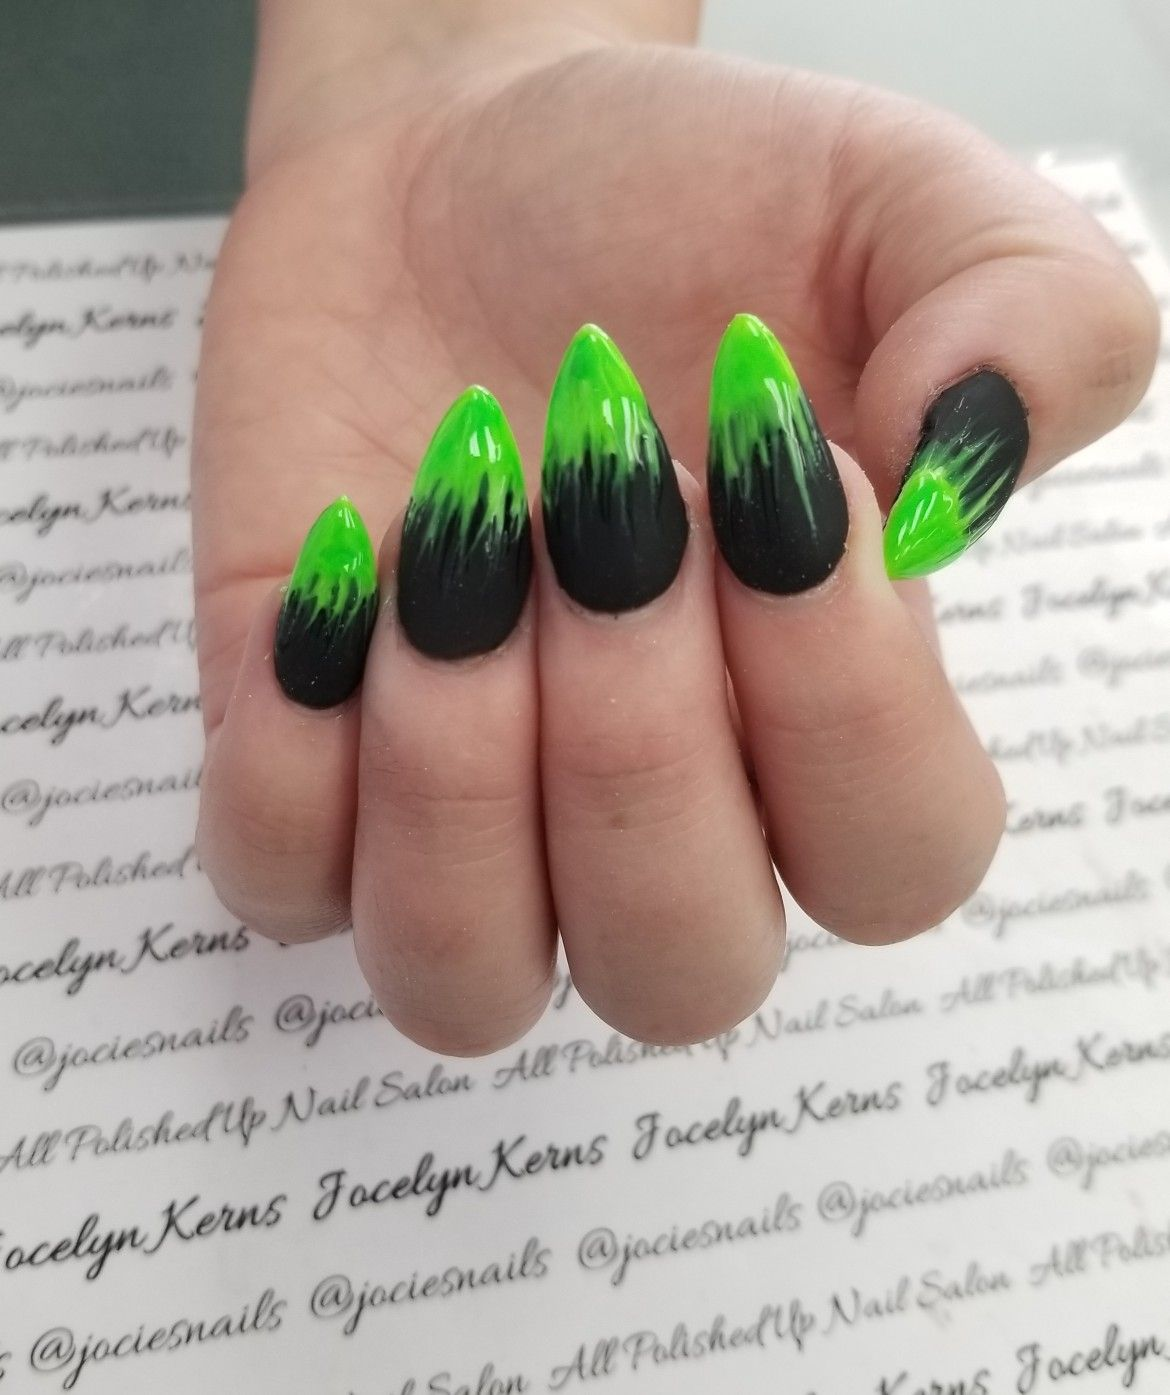 Poison ivy nails poison dipped nails Halloween nails black